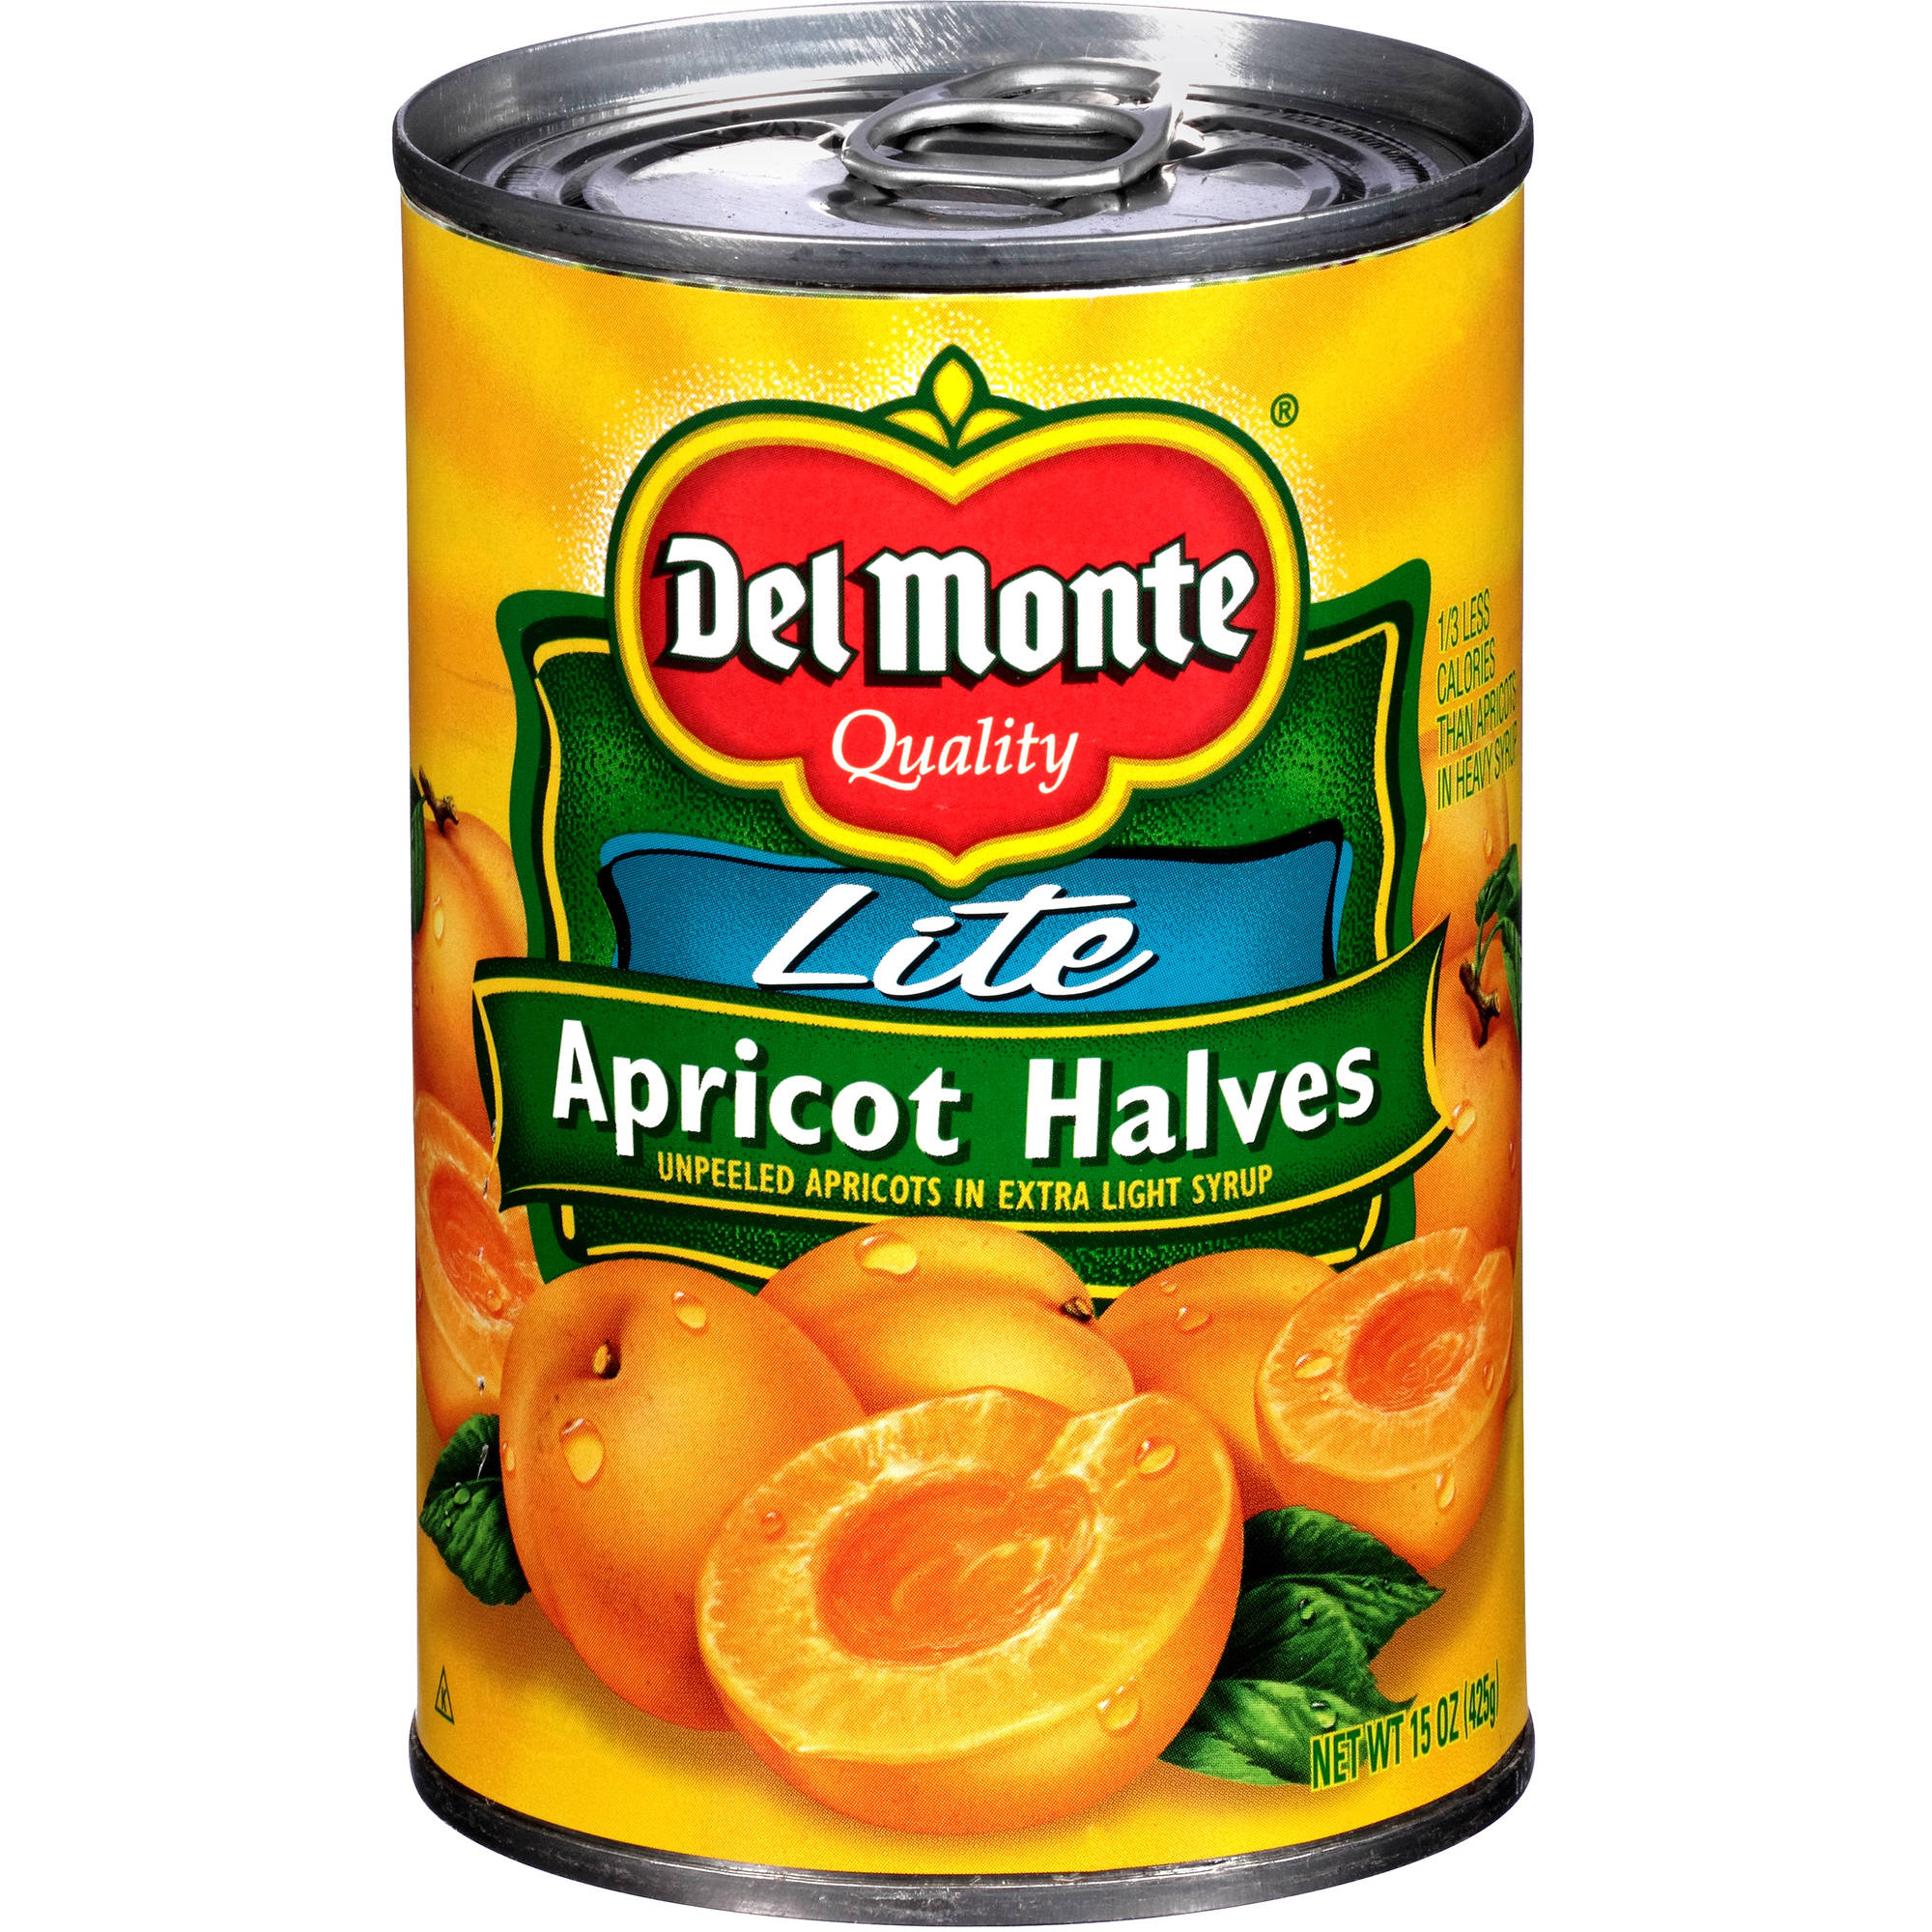 Del Monte Lite Apricot Halves Unpeeled Apricots in Extra Light Syrup, 15 oz